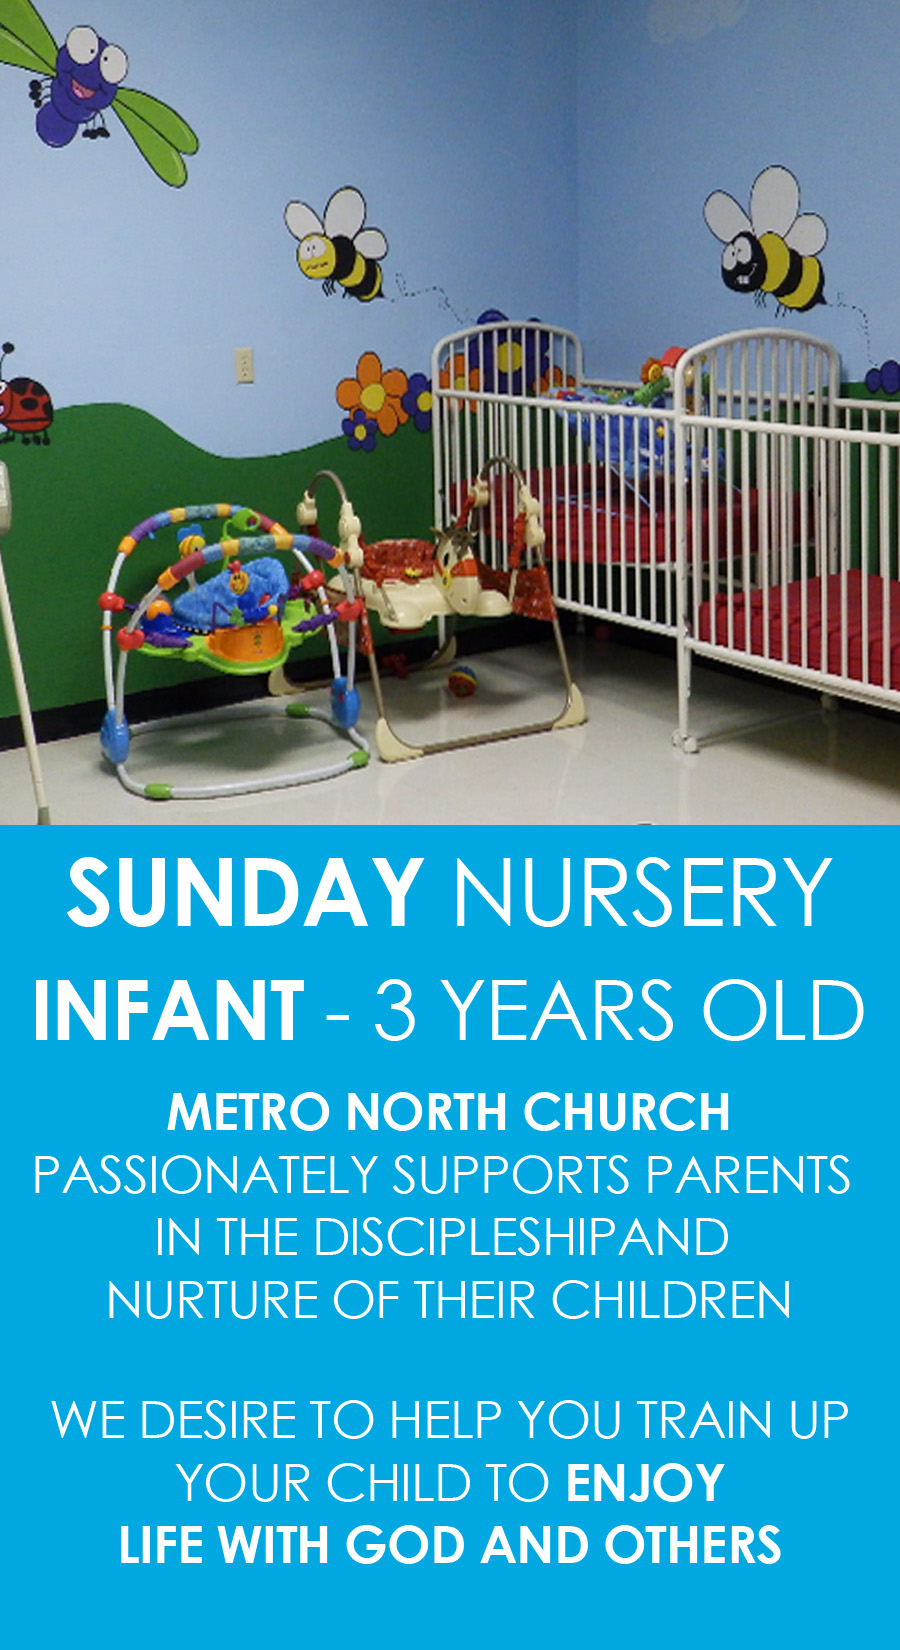 sunday nursery.jpg